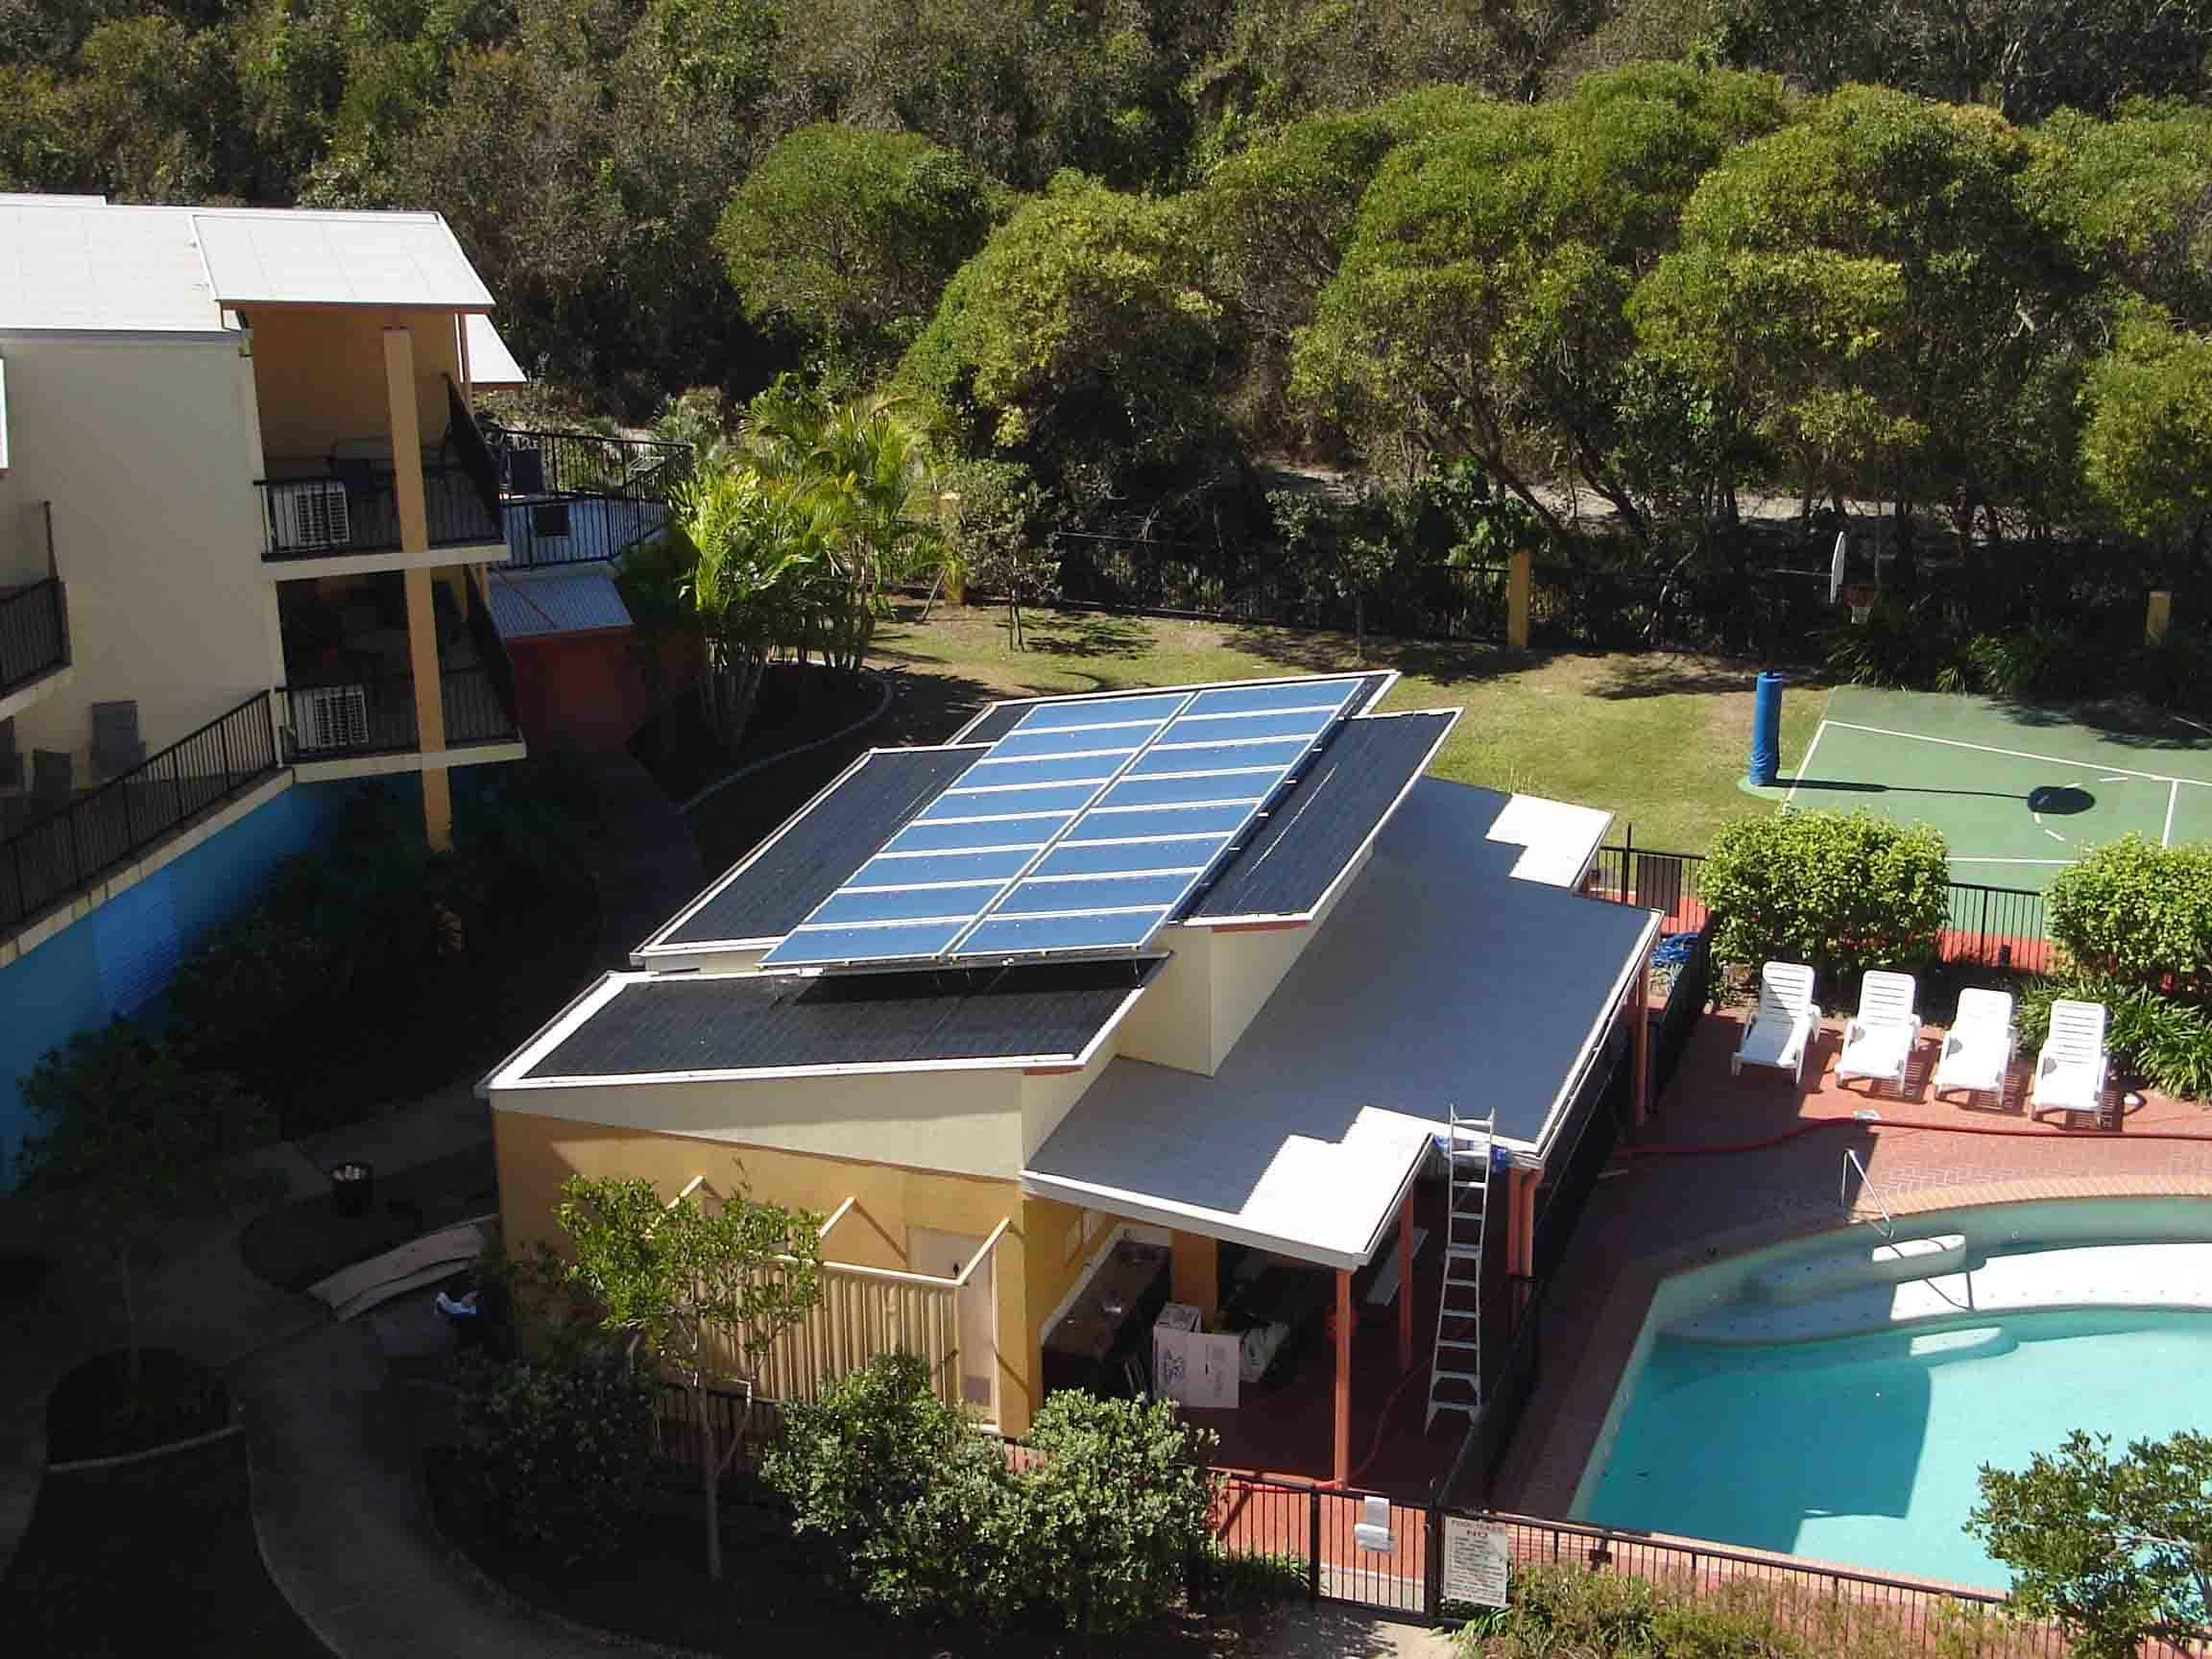 What Is The Biggest Cost With A Pool Hot Solar Water